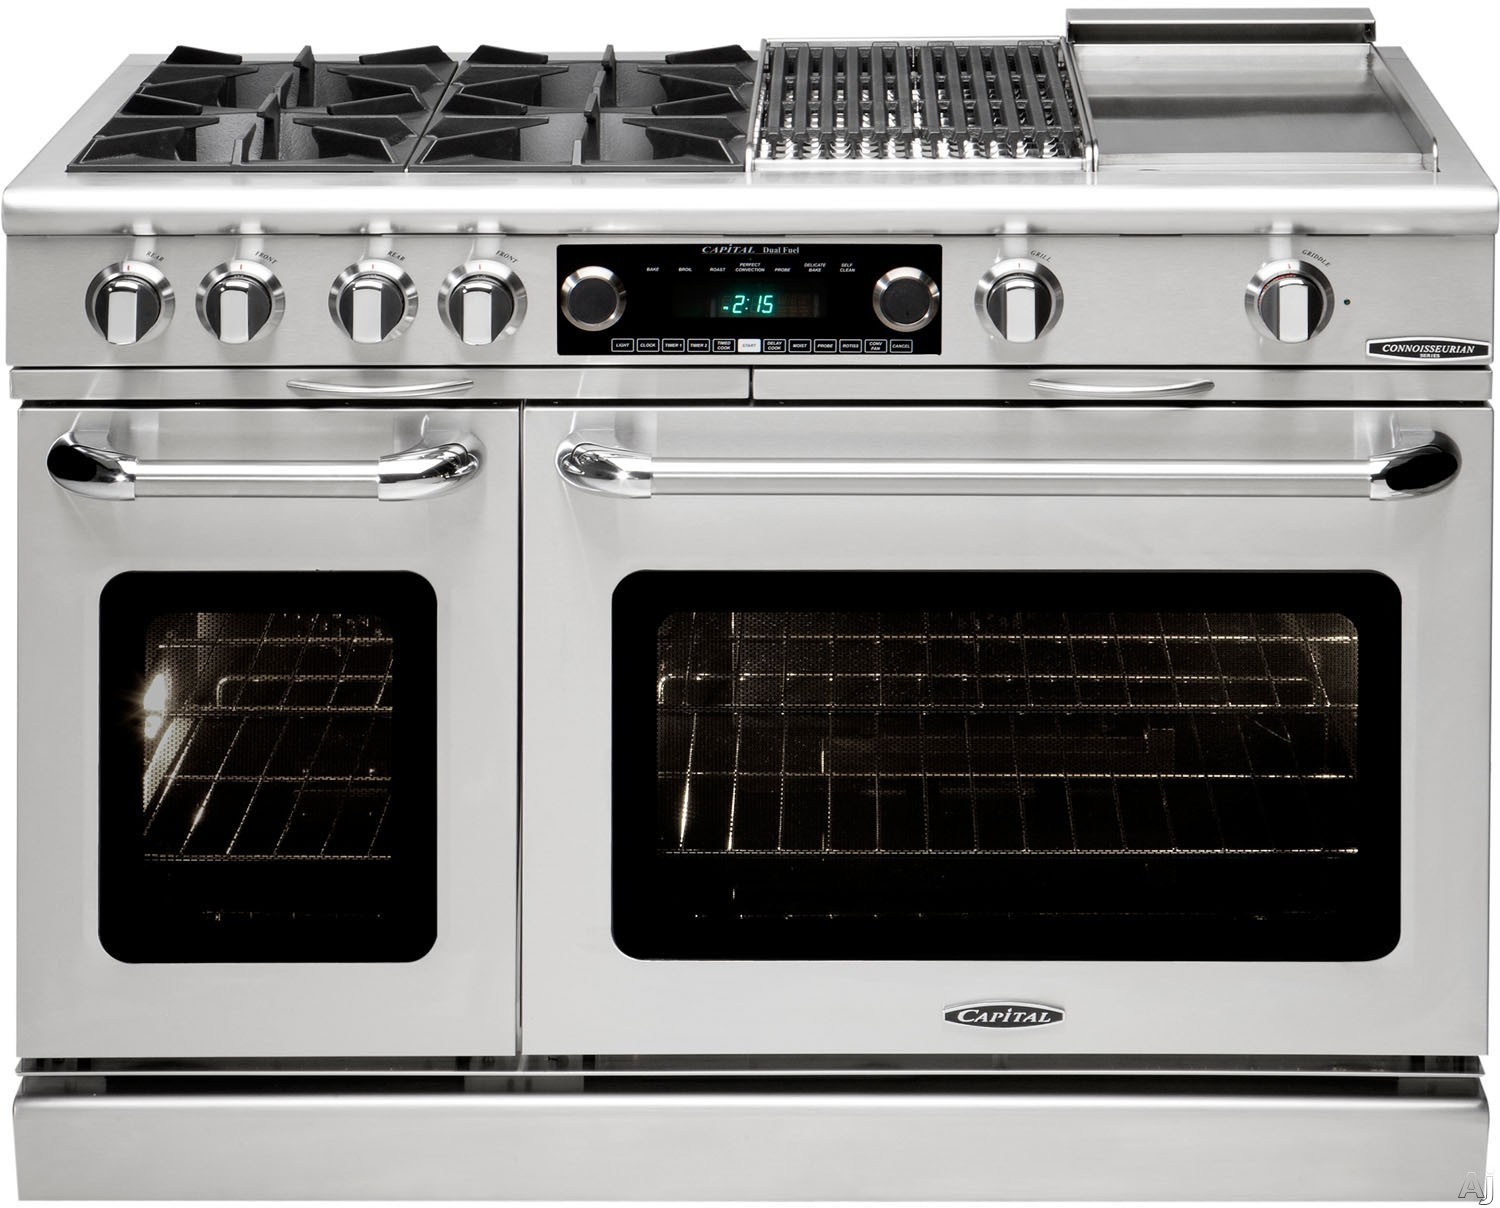 "Capital Connoisseurian Series CSB484GG 48 Inch Pro-Style Dual Fuel Range with 4 Sealed Burners, Meat Probe, Moto-Rotisâ""¢ Rotisserie, Dual Kitchen Timers, Flex-Rollâ""¢ Oven Racks, Moist Bake Option, 5.4 cu. ft. Main Oven and 2.4 cu. ft. Secondary Oven CS"